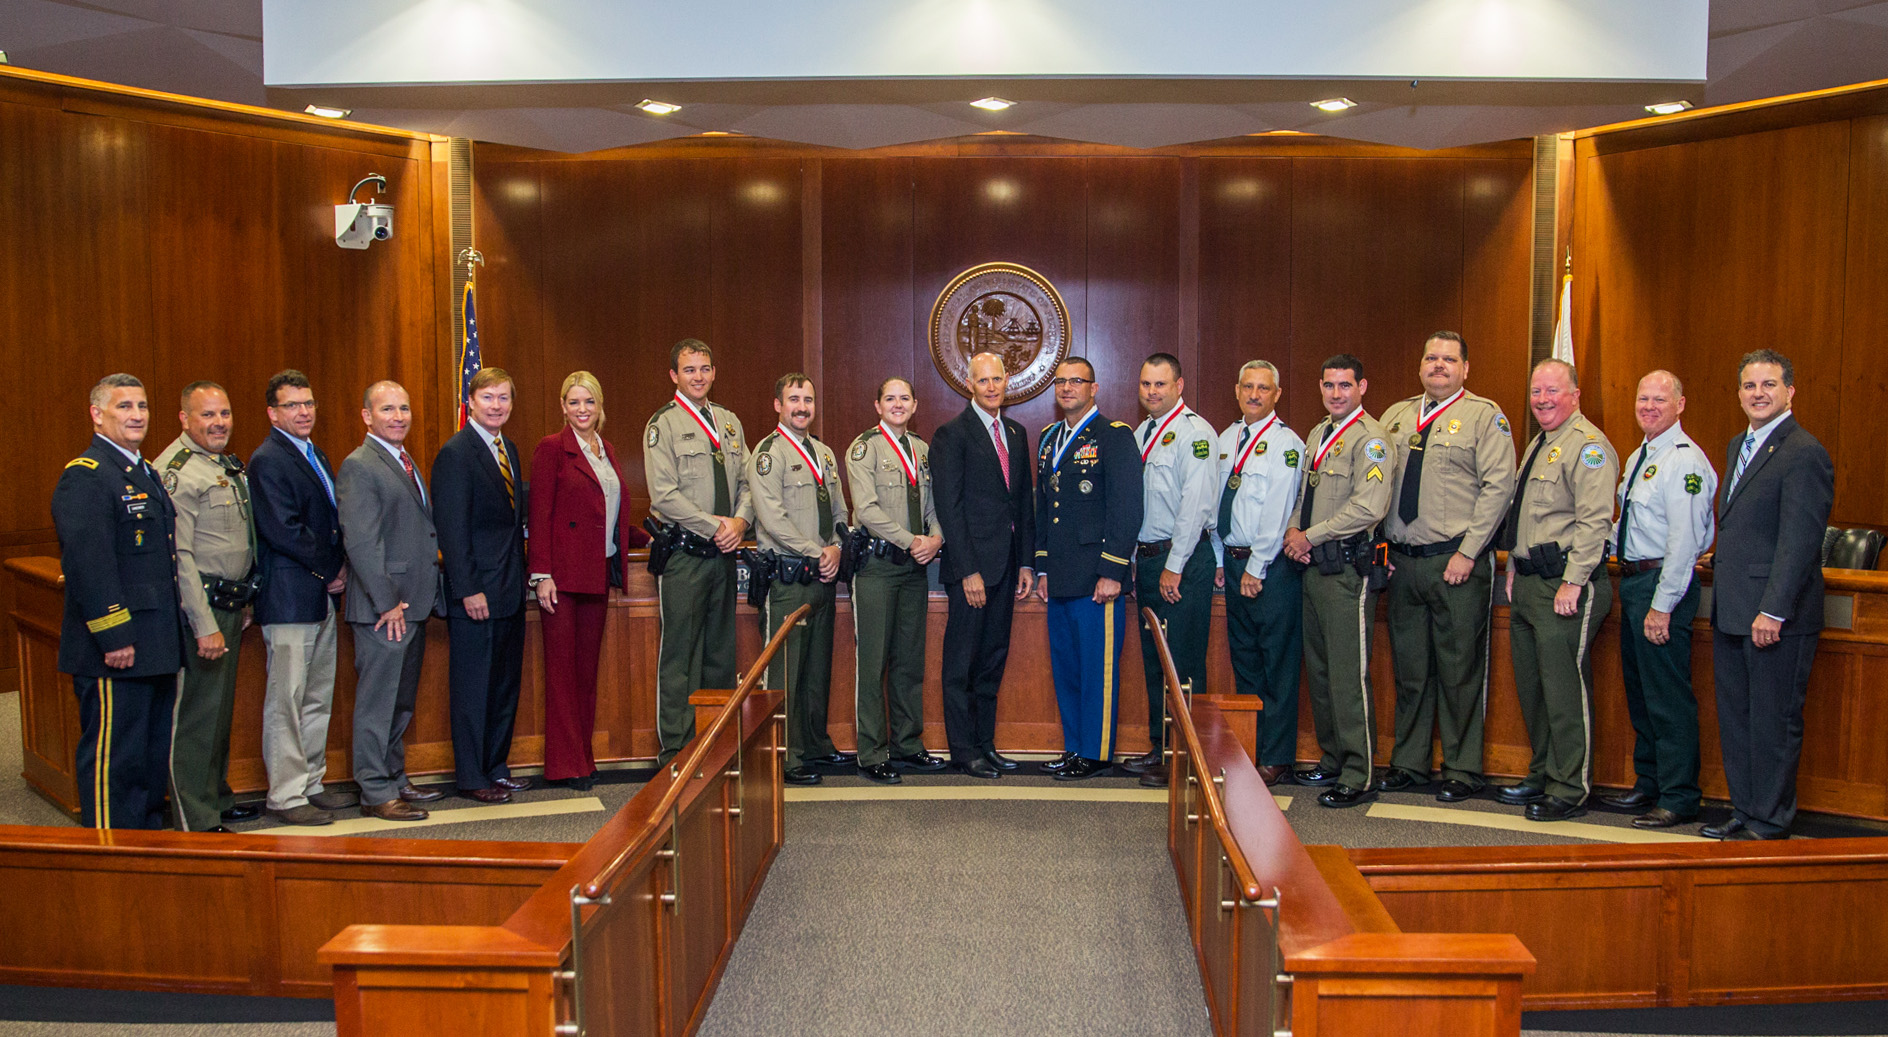 During Todayu0027s Meeting Of The Florida Cabinet, Gov. Rick Scott Recognized  Three Florida Fish And Wildlife Conservation Commission (FWC) Officers With  The ...